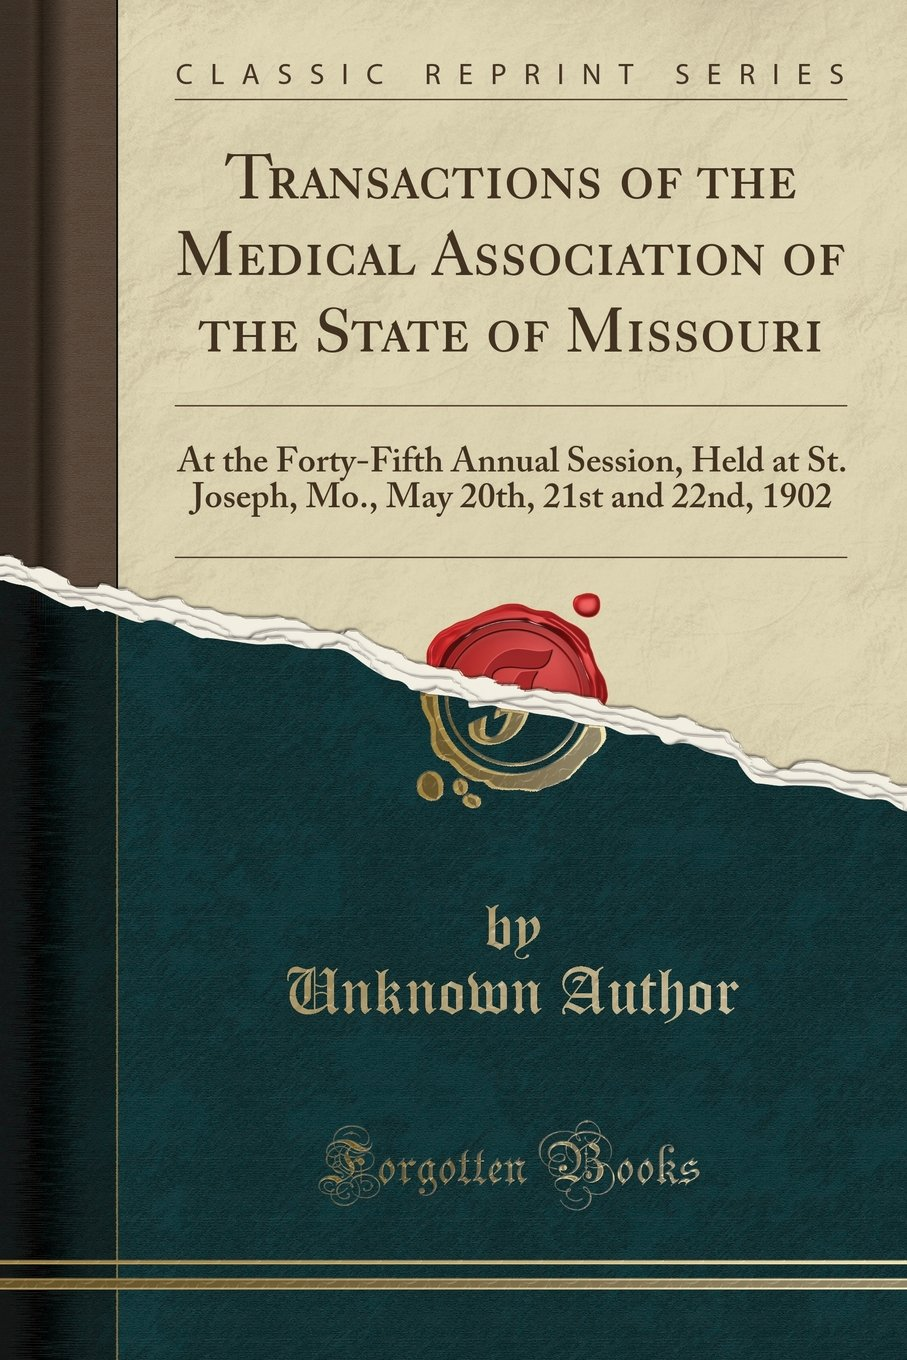 Transactions of the Medical Association of the State of Missouri: At the Forty-Fifth Annual Session, Held at St. Joseph, Mo., May 20th, 21st and 22nd, 1902 (Classic Reprint) pdf epub